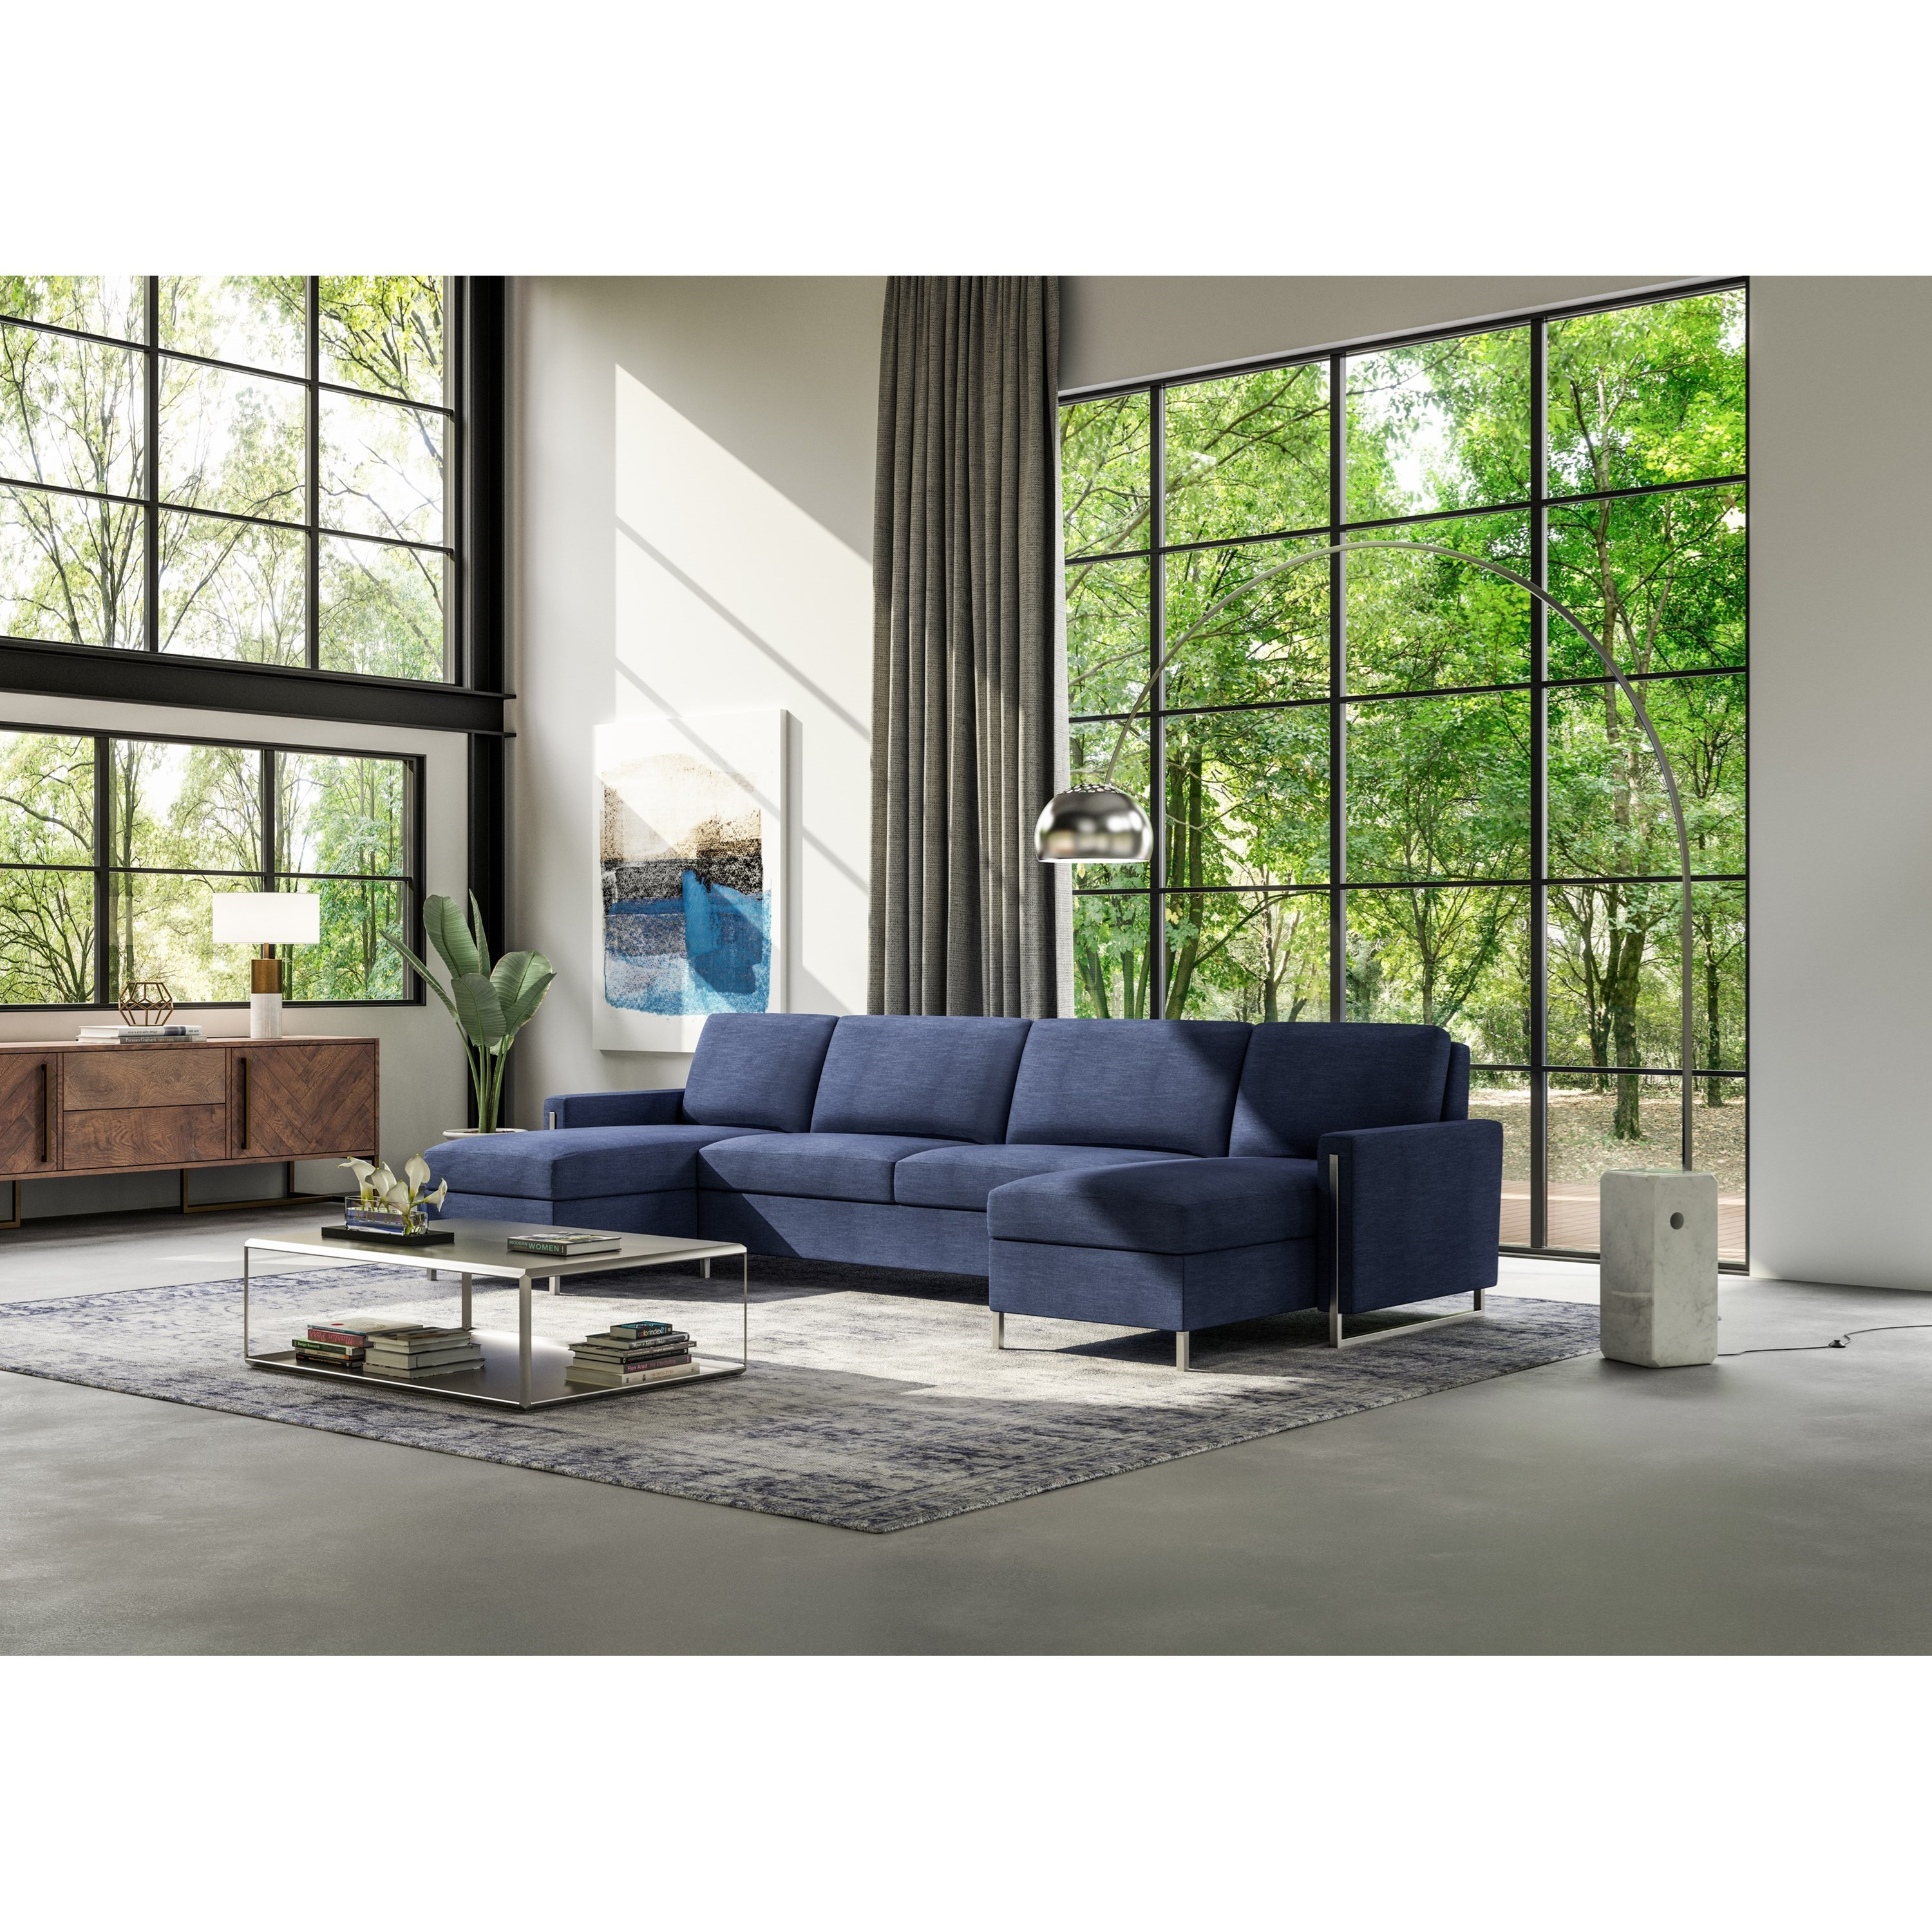 American Leather Sulley Three Piece Sectional Sofa With